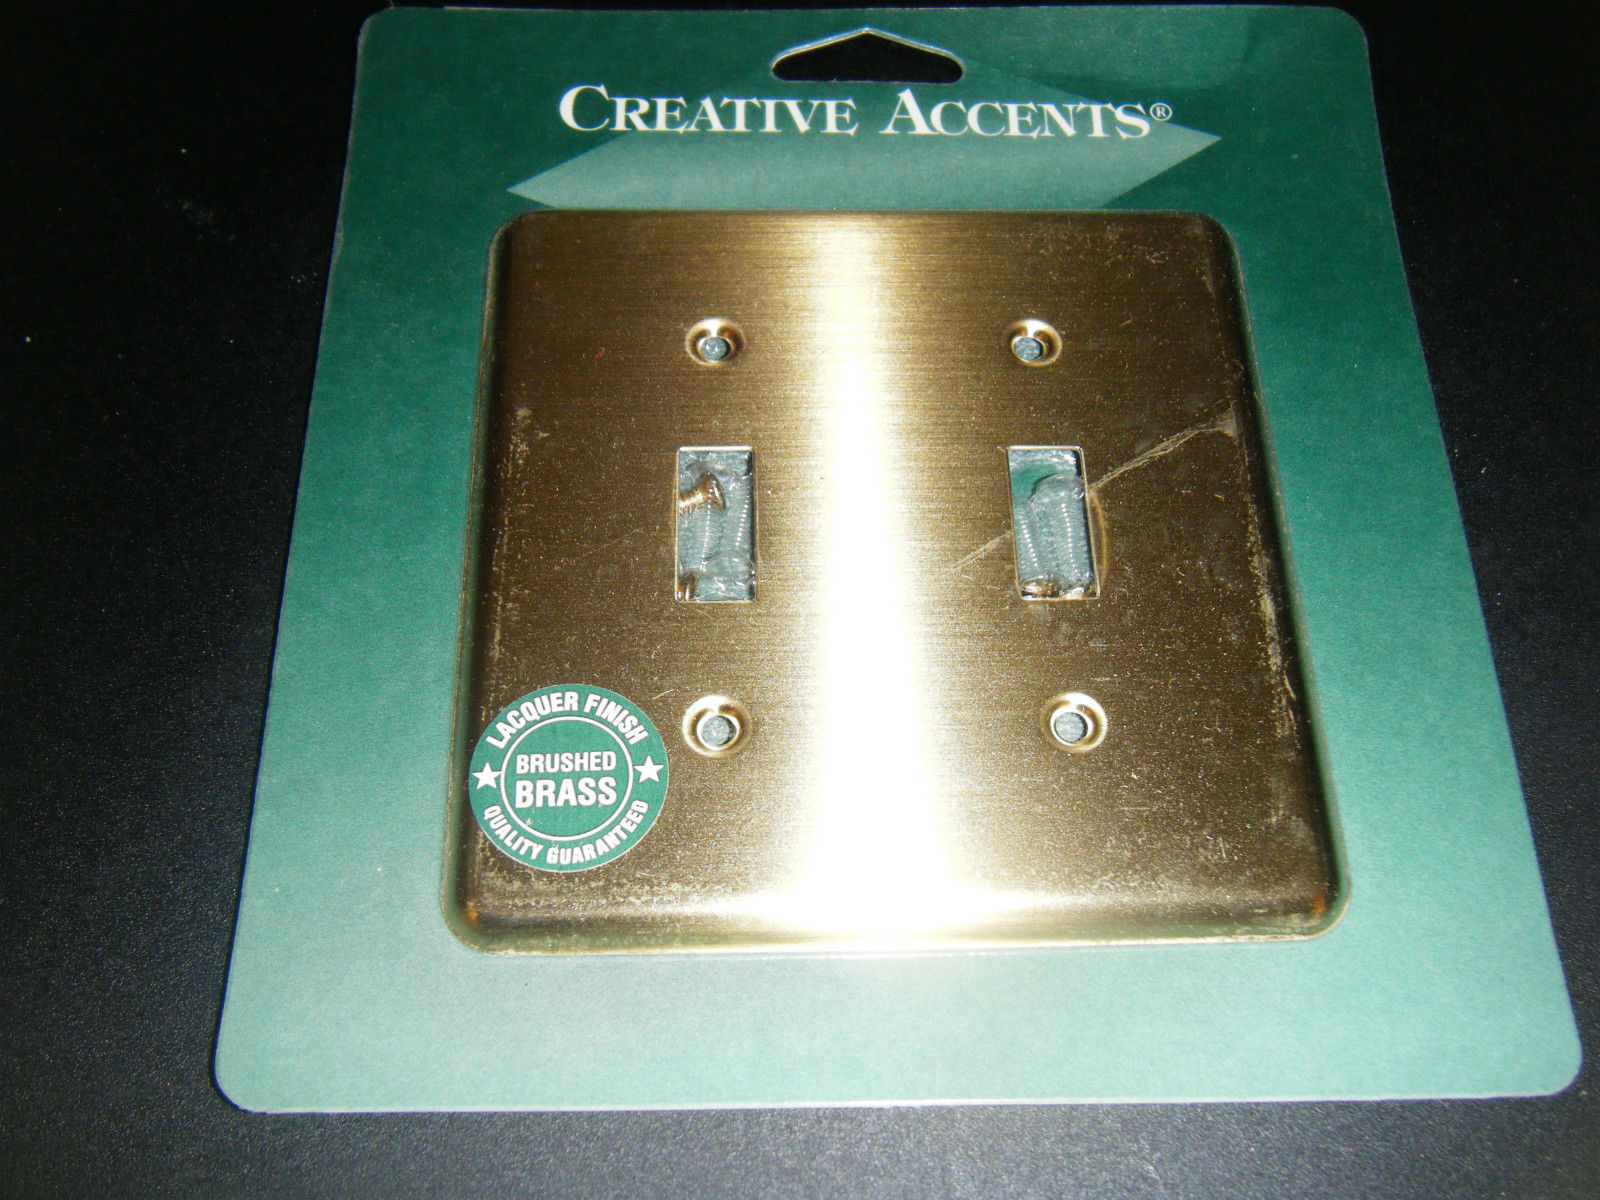 Creative Accents Brushed Chrome Steel 2 Rocker Switch GFCI Decorative Wallplate